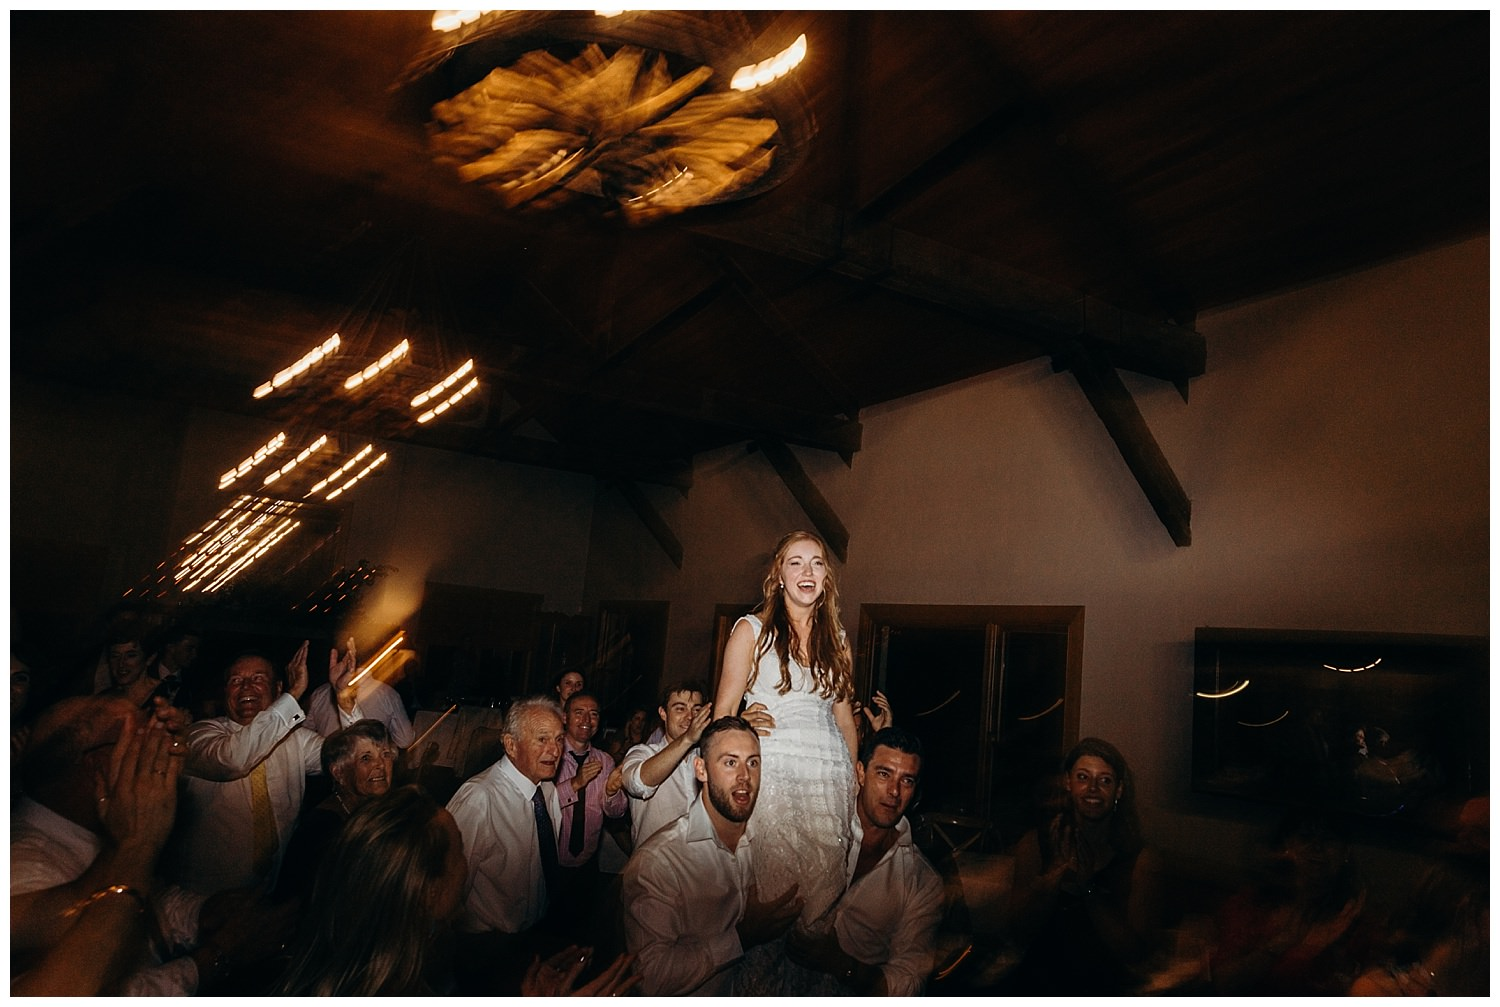 Bowral Southern Highlands Autumn Wedding - Bride lifted up at wedding reception